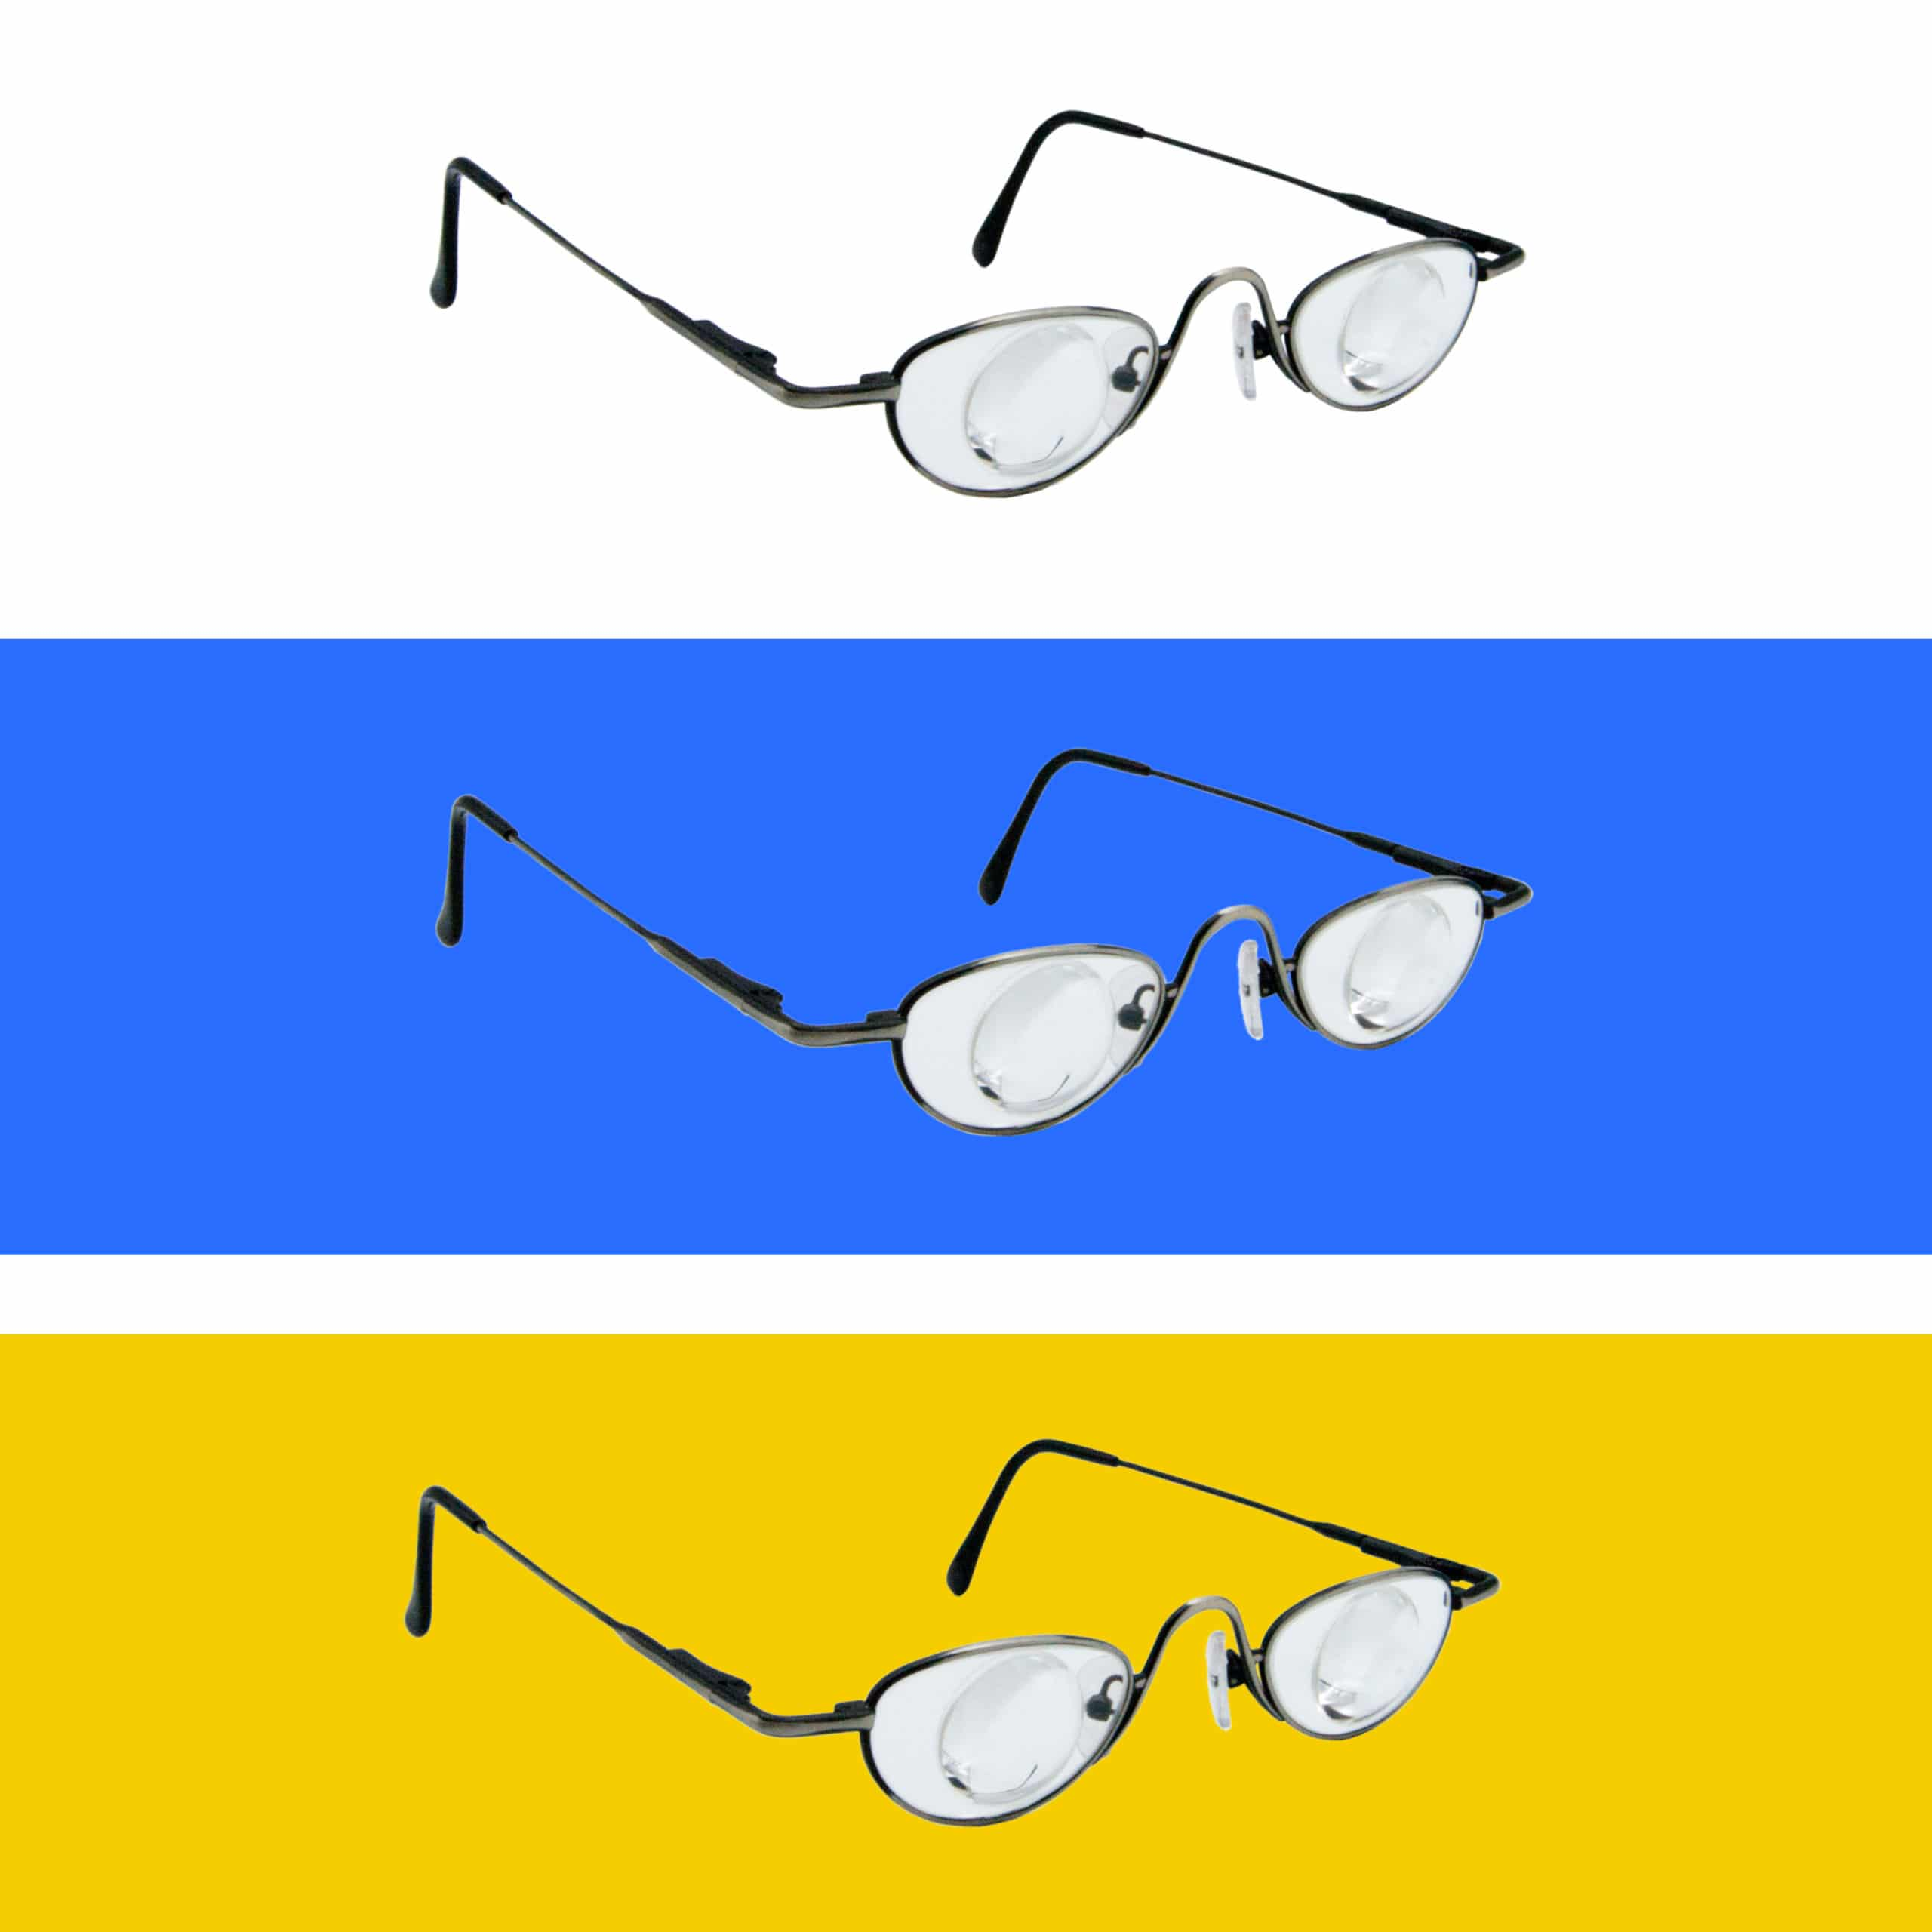 Brille 03 scaled